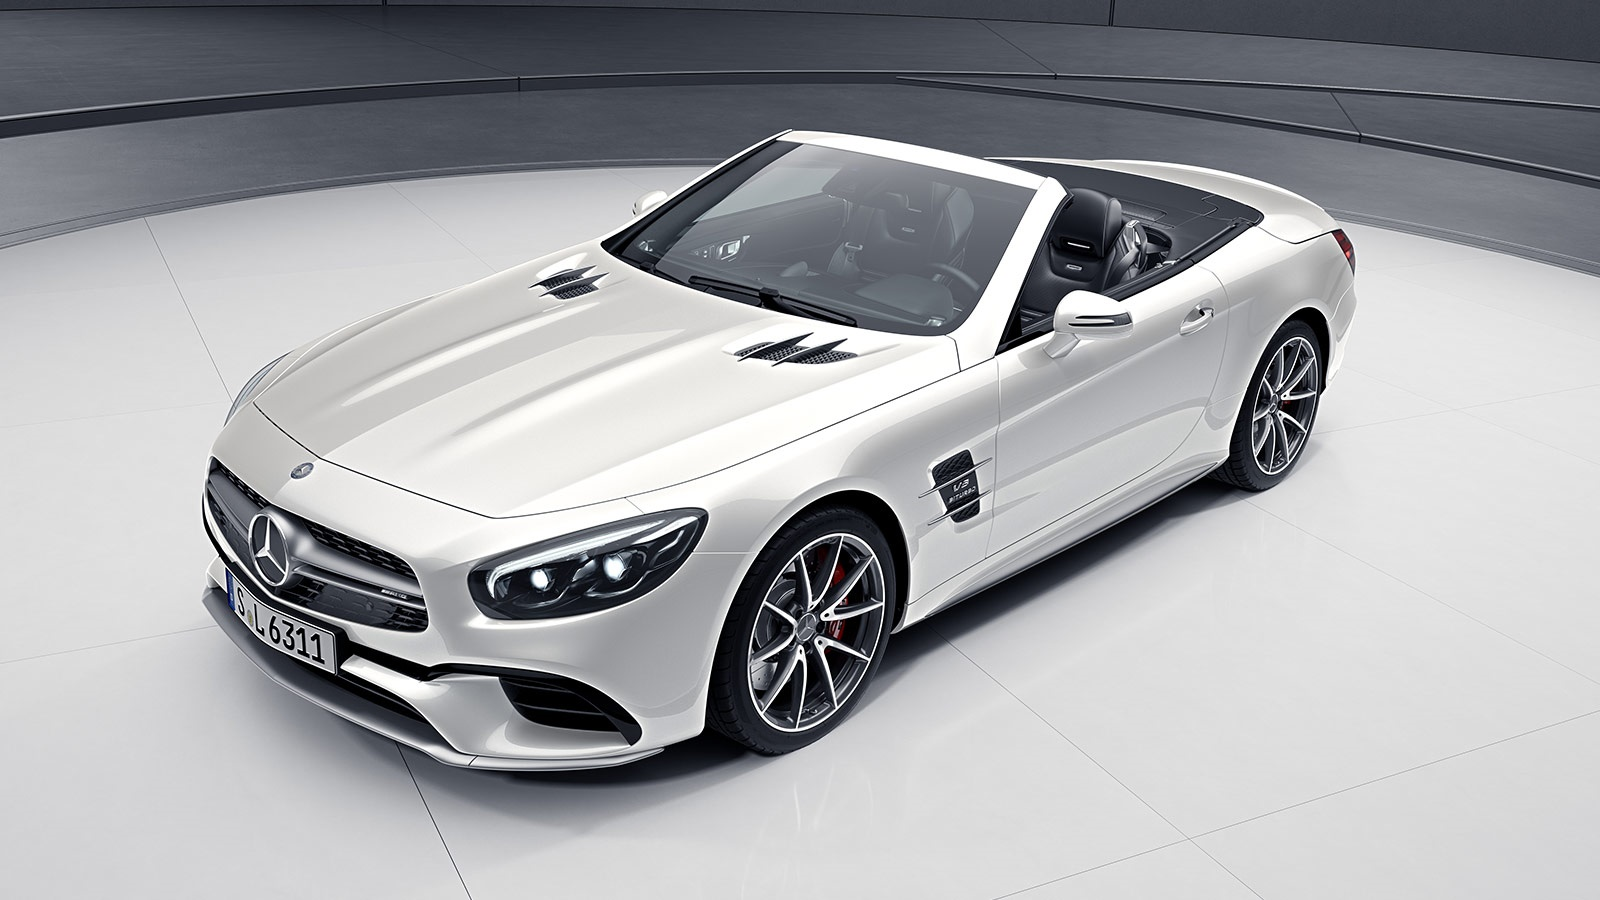 Mercedes benz sl 63 amg 2017 5 5l in uae new car prices for Mercedes benz sl500 amg